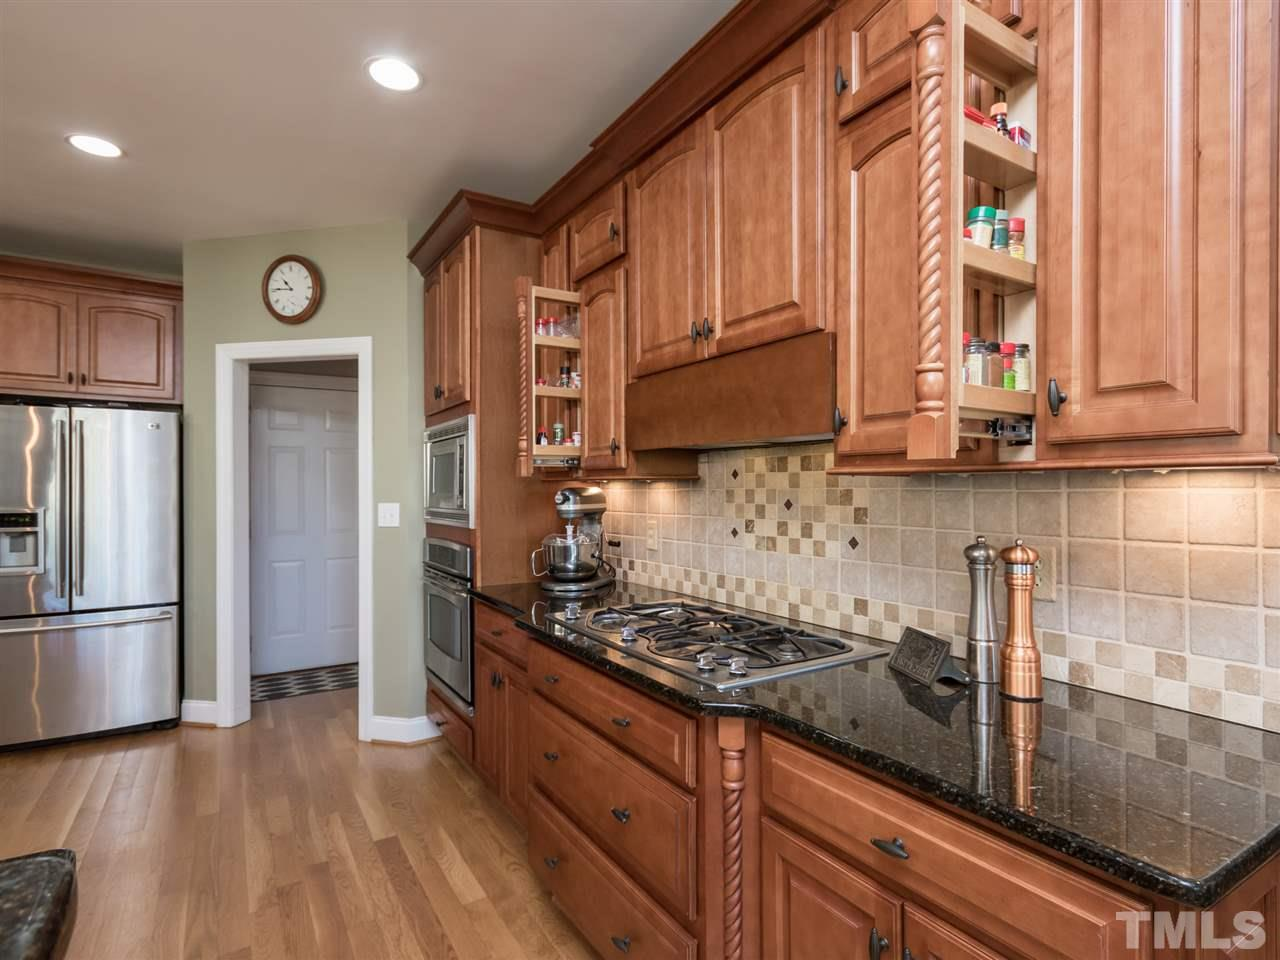 Don't miss the concealed vent over the 5-burner gas cooktop and the multiple storage areas for spices and cleaning supplies.